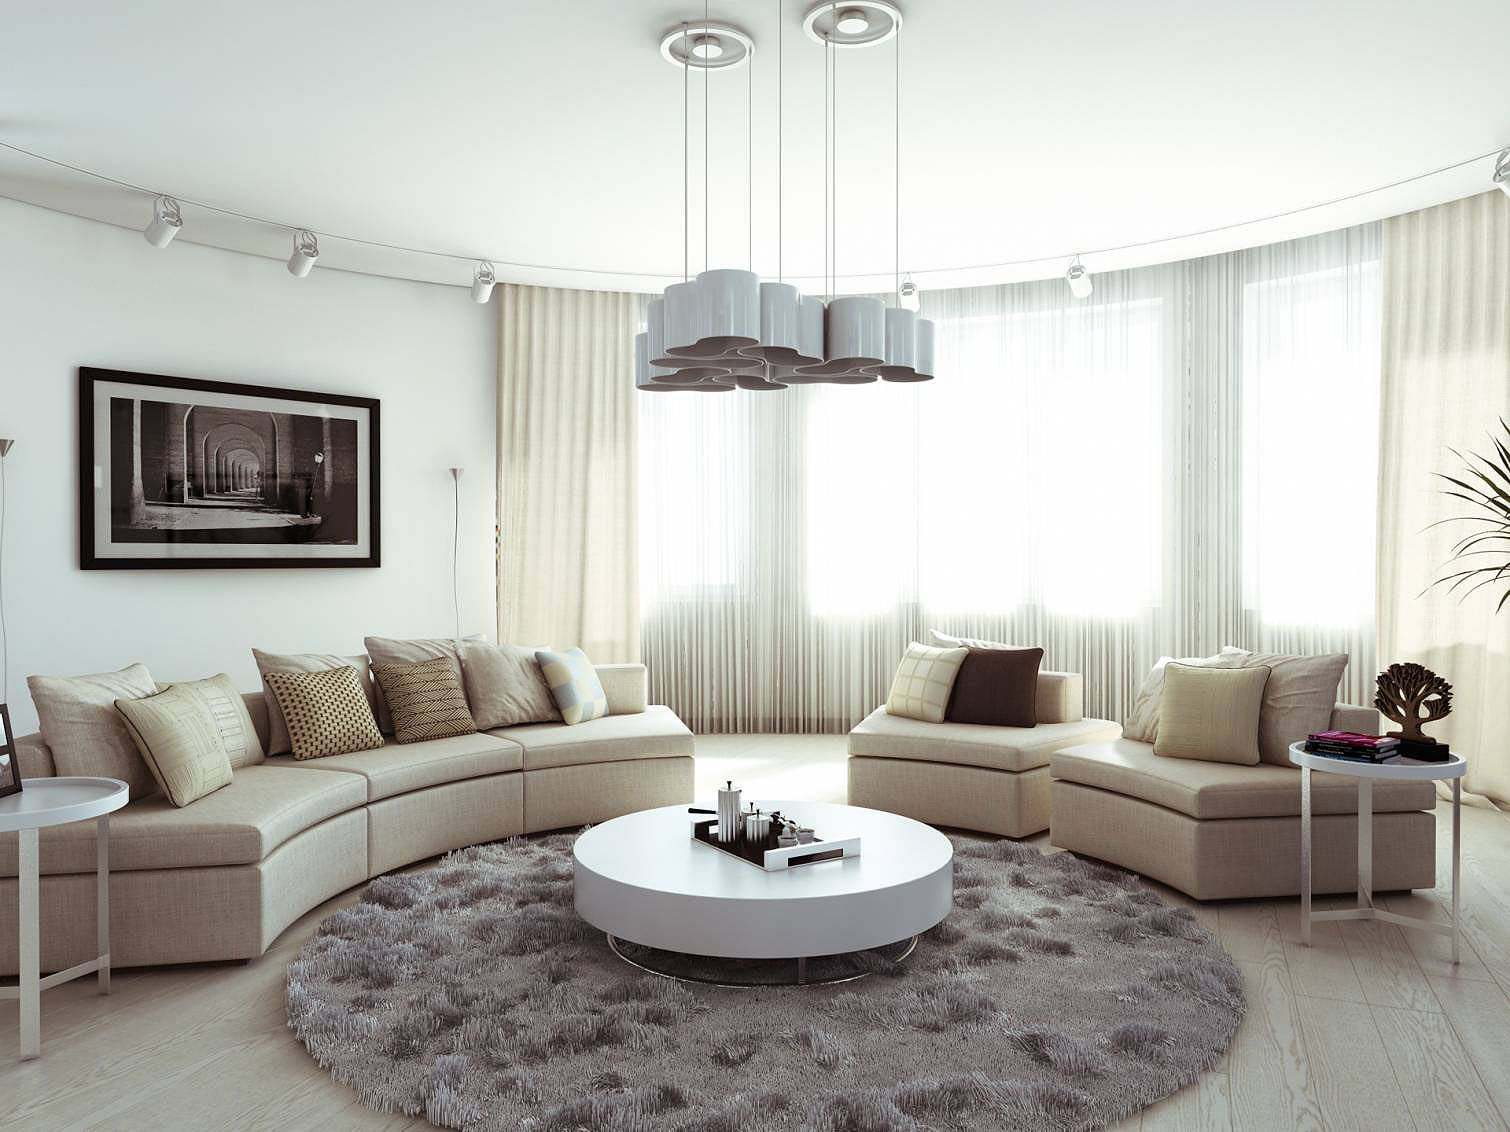 Merveilleux Unique Interior #Decoration Style With #Contemporary Round Area #Rugs.